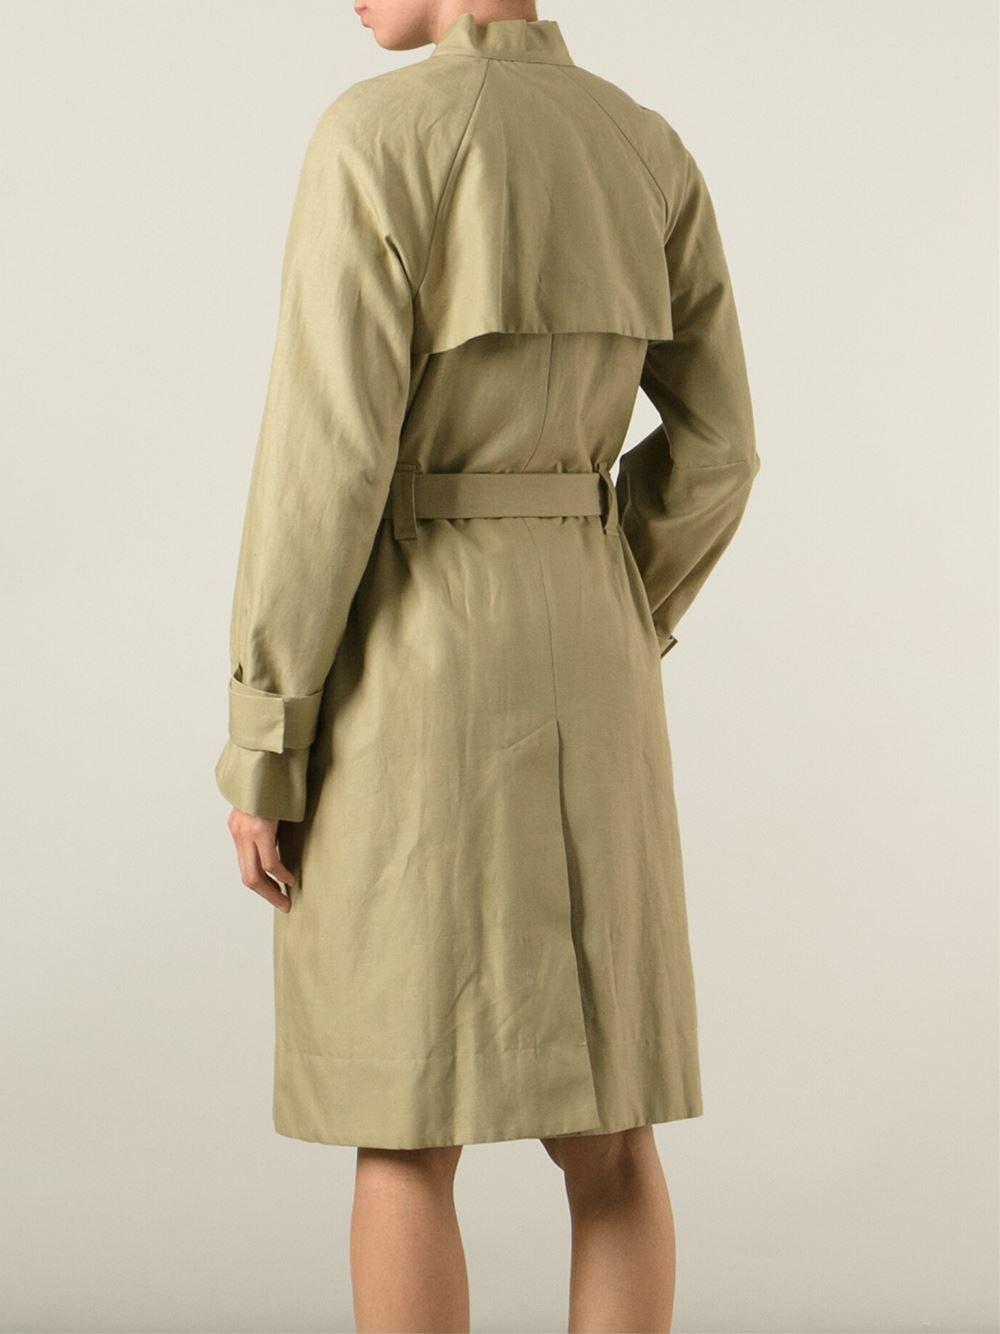 681d9937862 Isabel Marant Oversized Trench Coat in Natural - Lyst